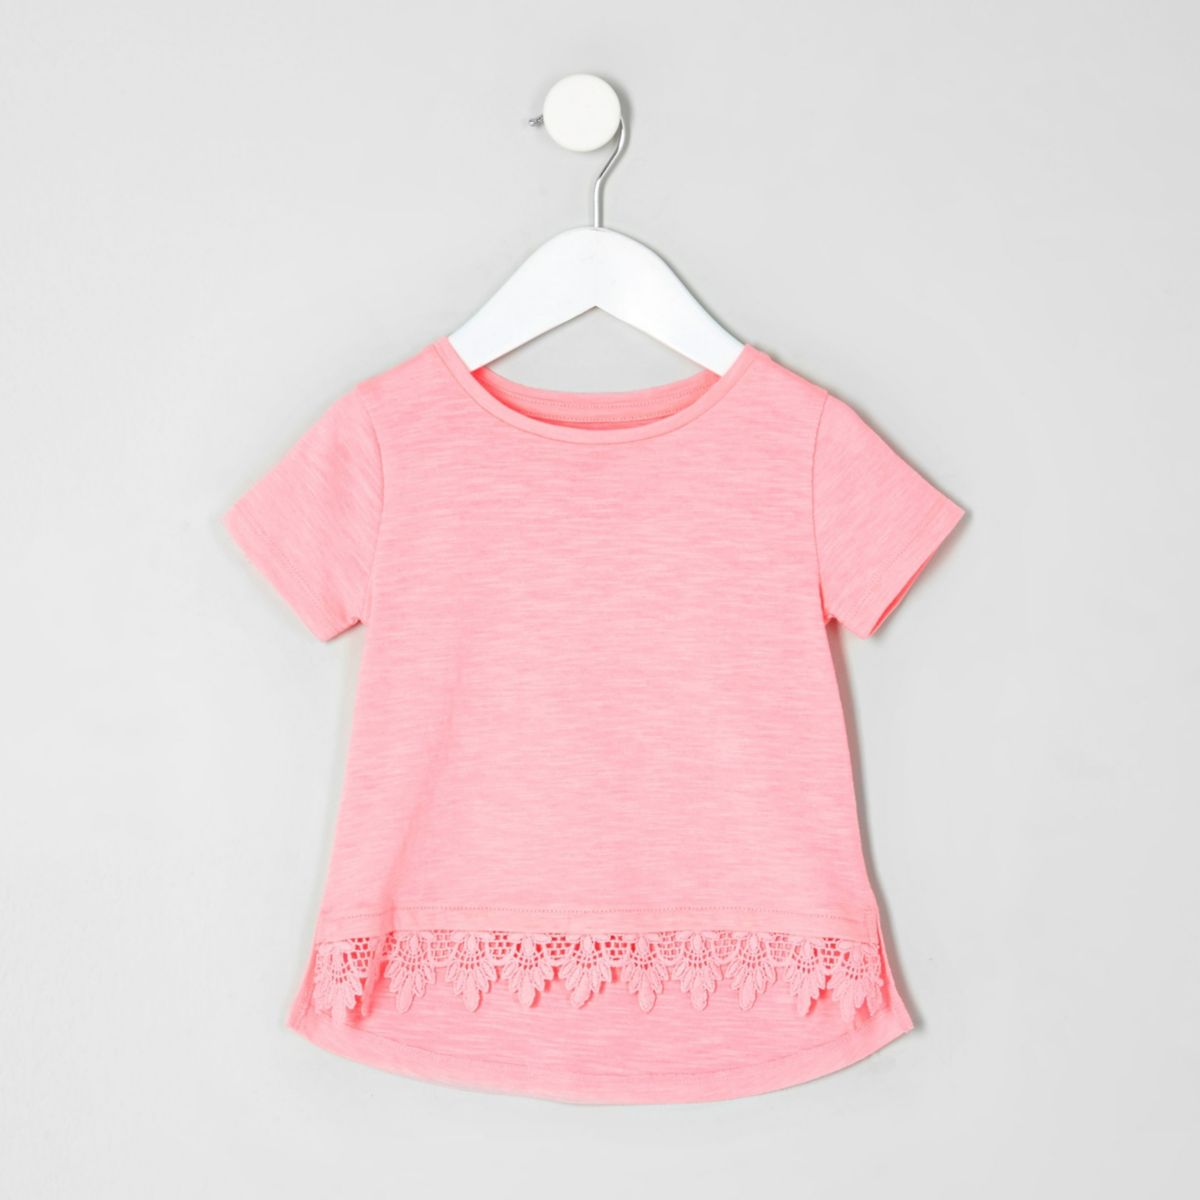 T-shirt rose fluo avec bordure au crochet mini fille